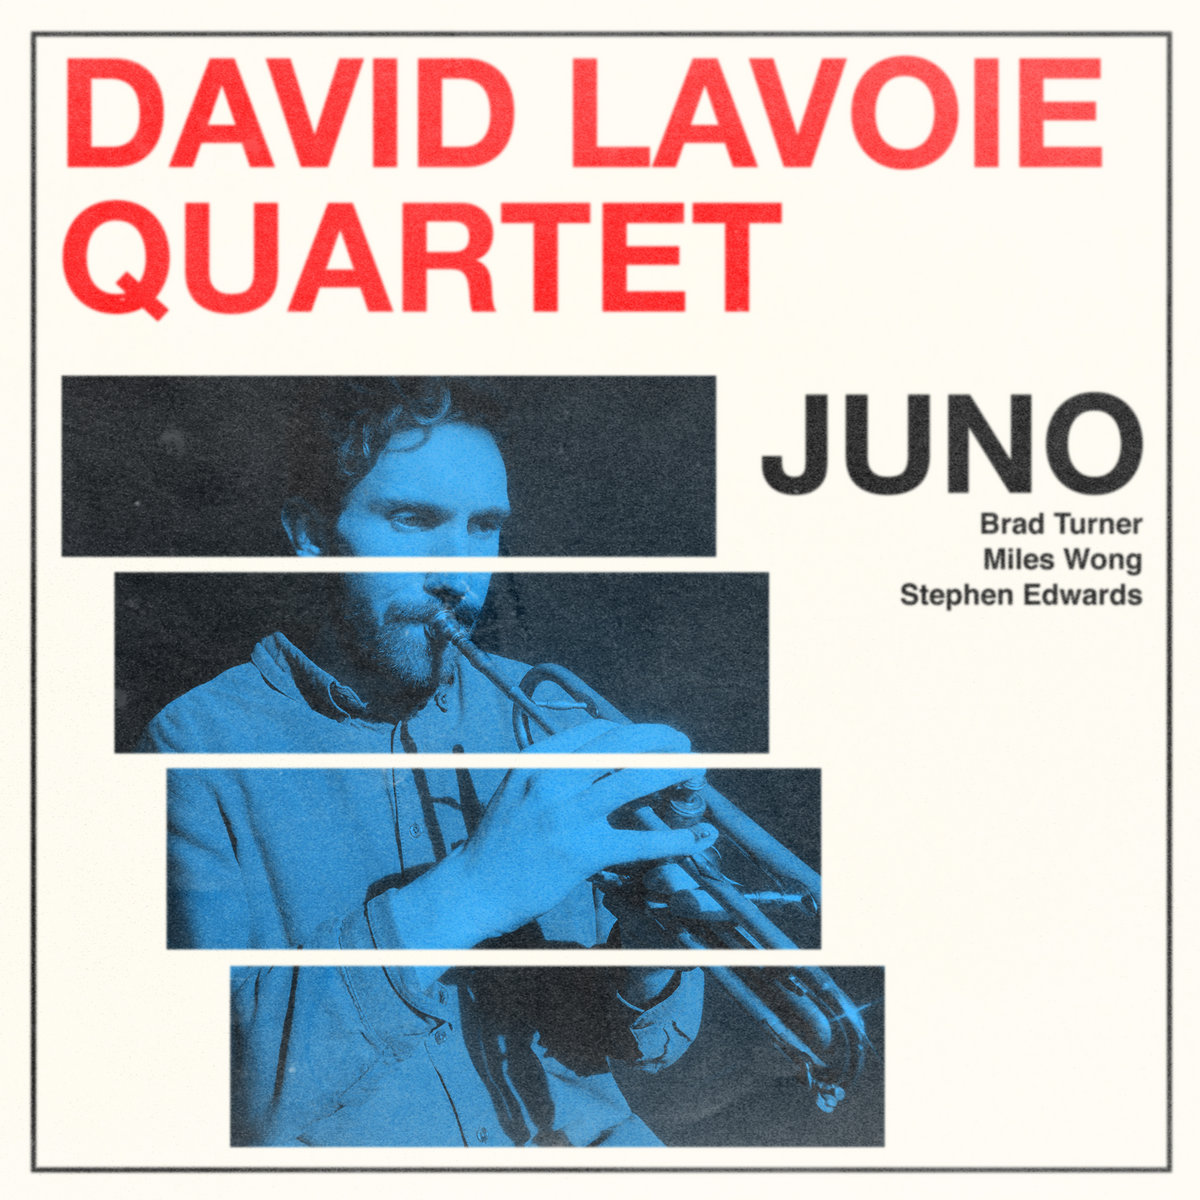 David-Lavoie-Quartet-–-Juno David Lavoie Quartet – Juno (2020)